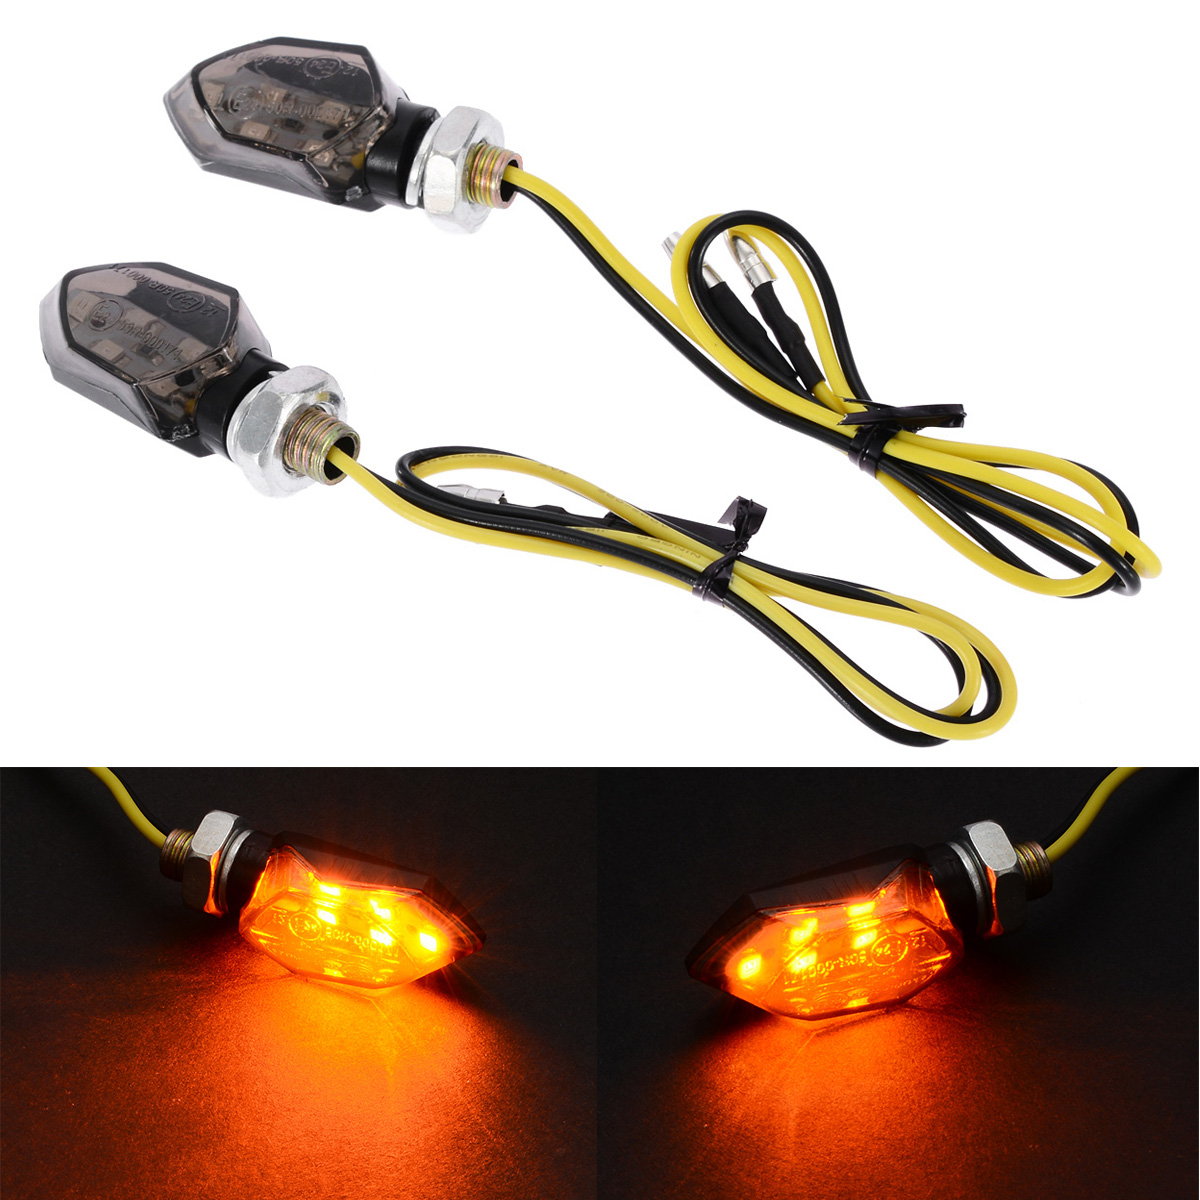 Treyues 2pcs Mini Universal Motorcycle LED Turn Signal Indicators Light Amber Blinker Led Motorbike Super Bright Lamp